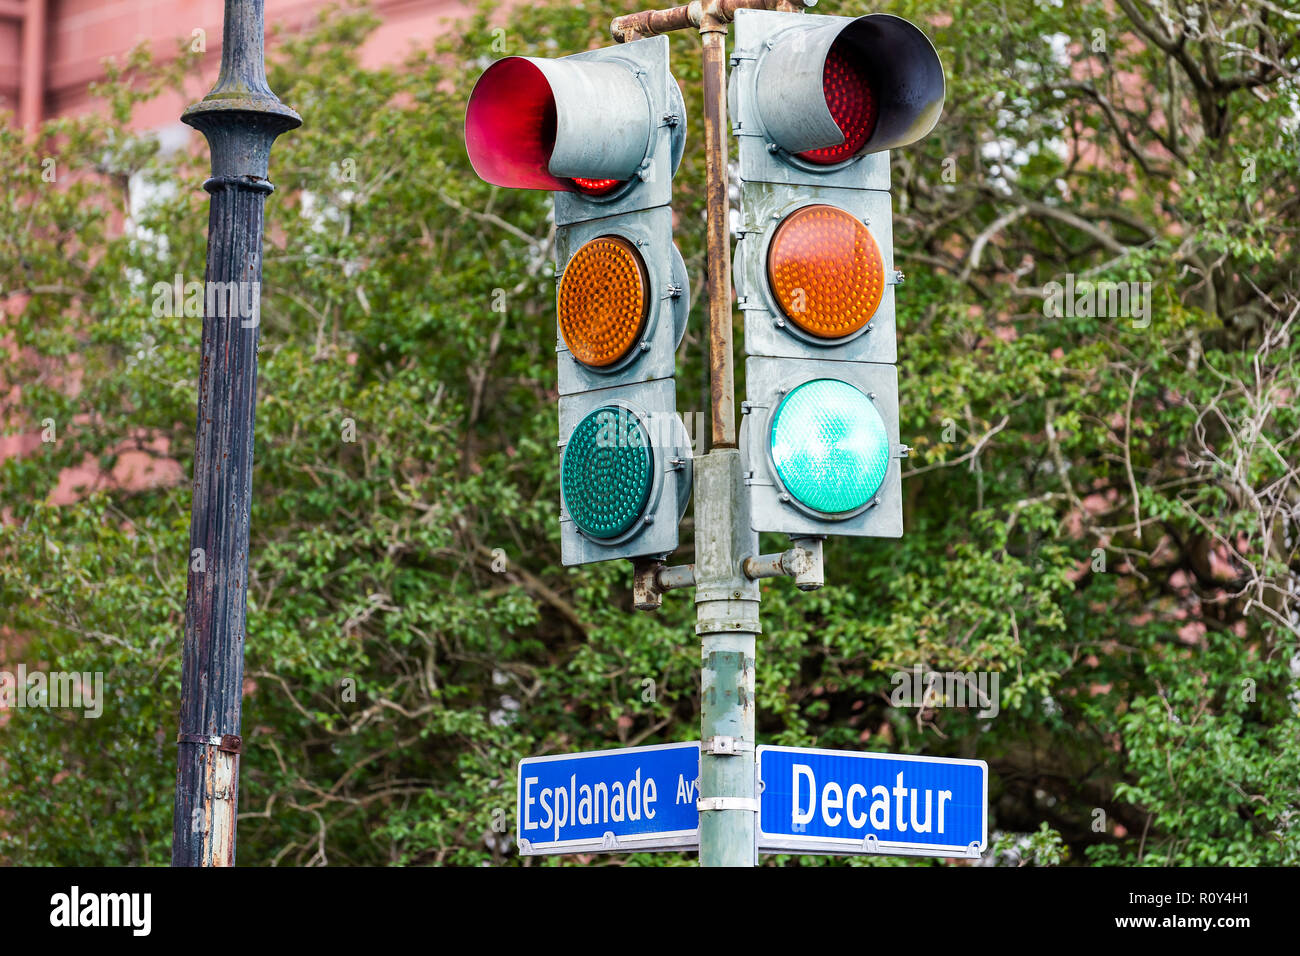 New Orleans, USA Esplanade avenue, Decatur street intersection sign in Louisiana town, city, colorful blue color, nobody, Marigny neighborhood, traffi - Stock Image